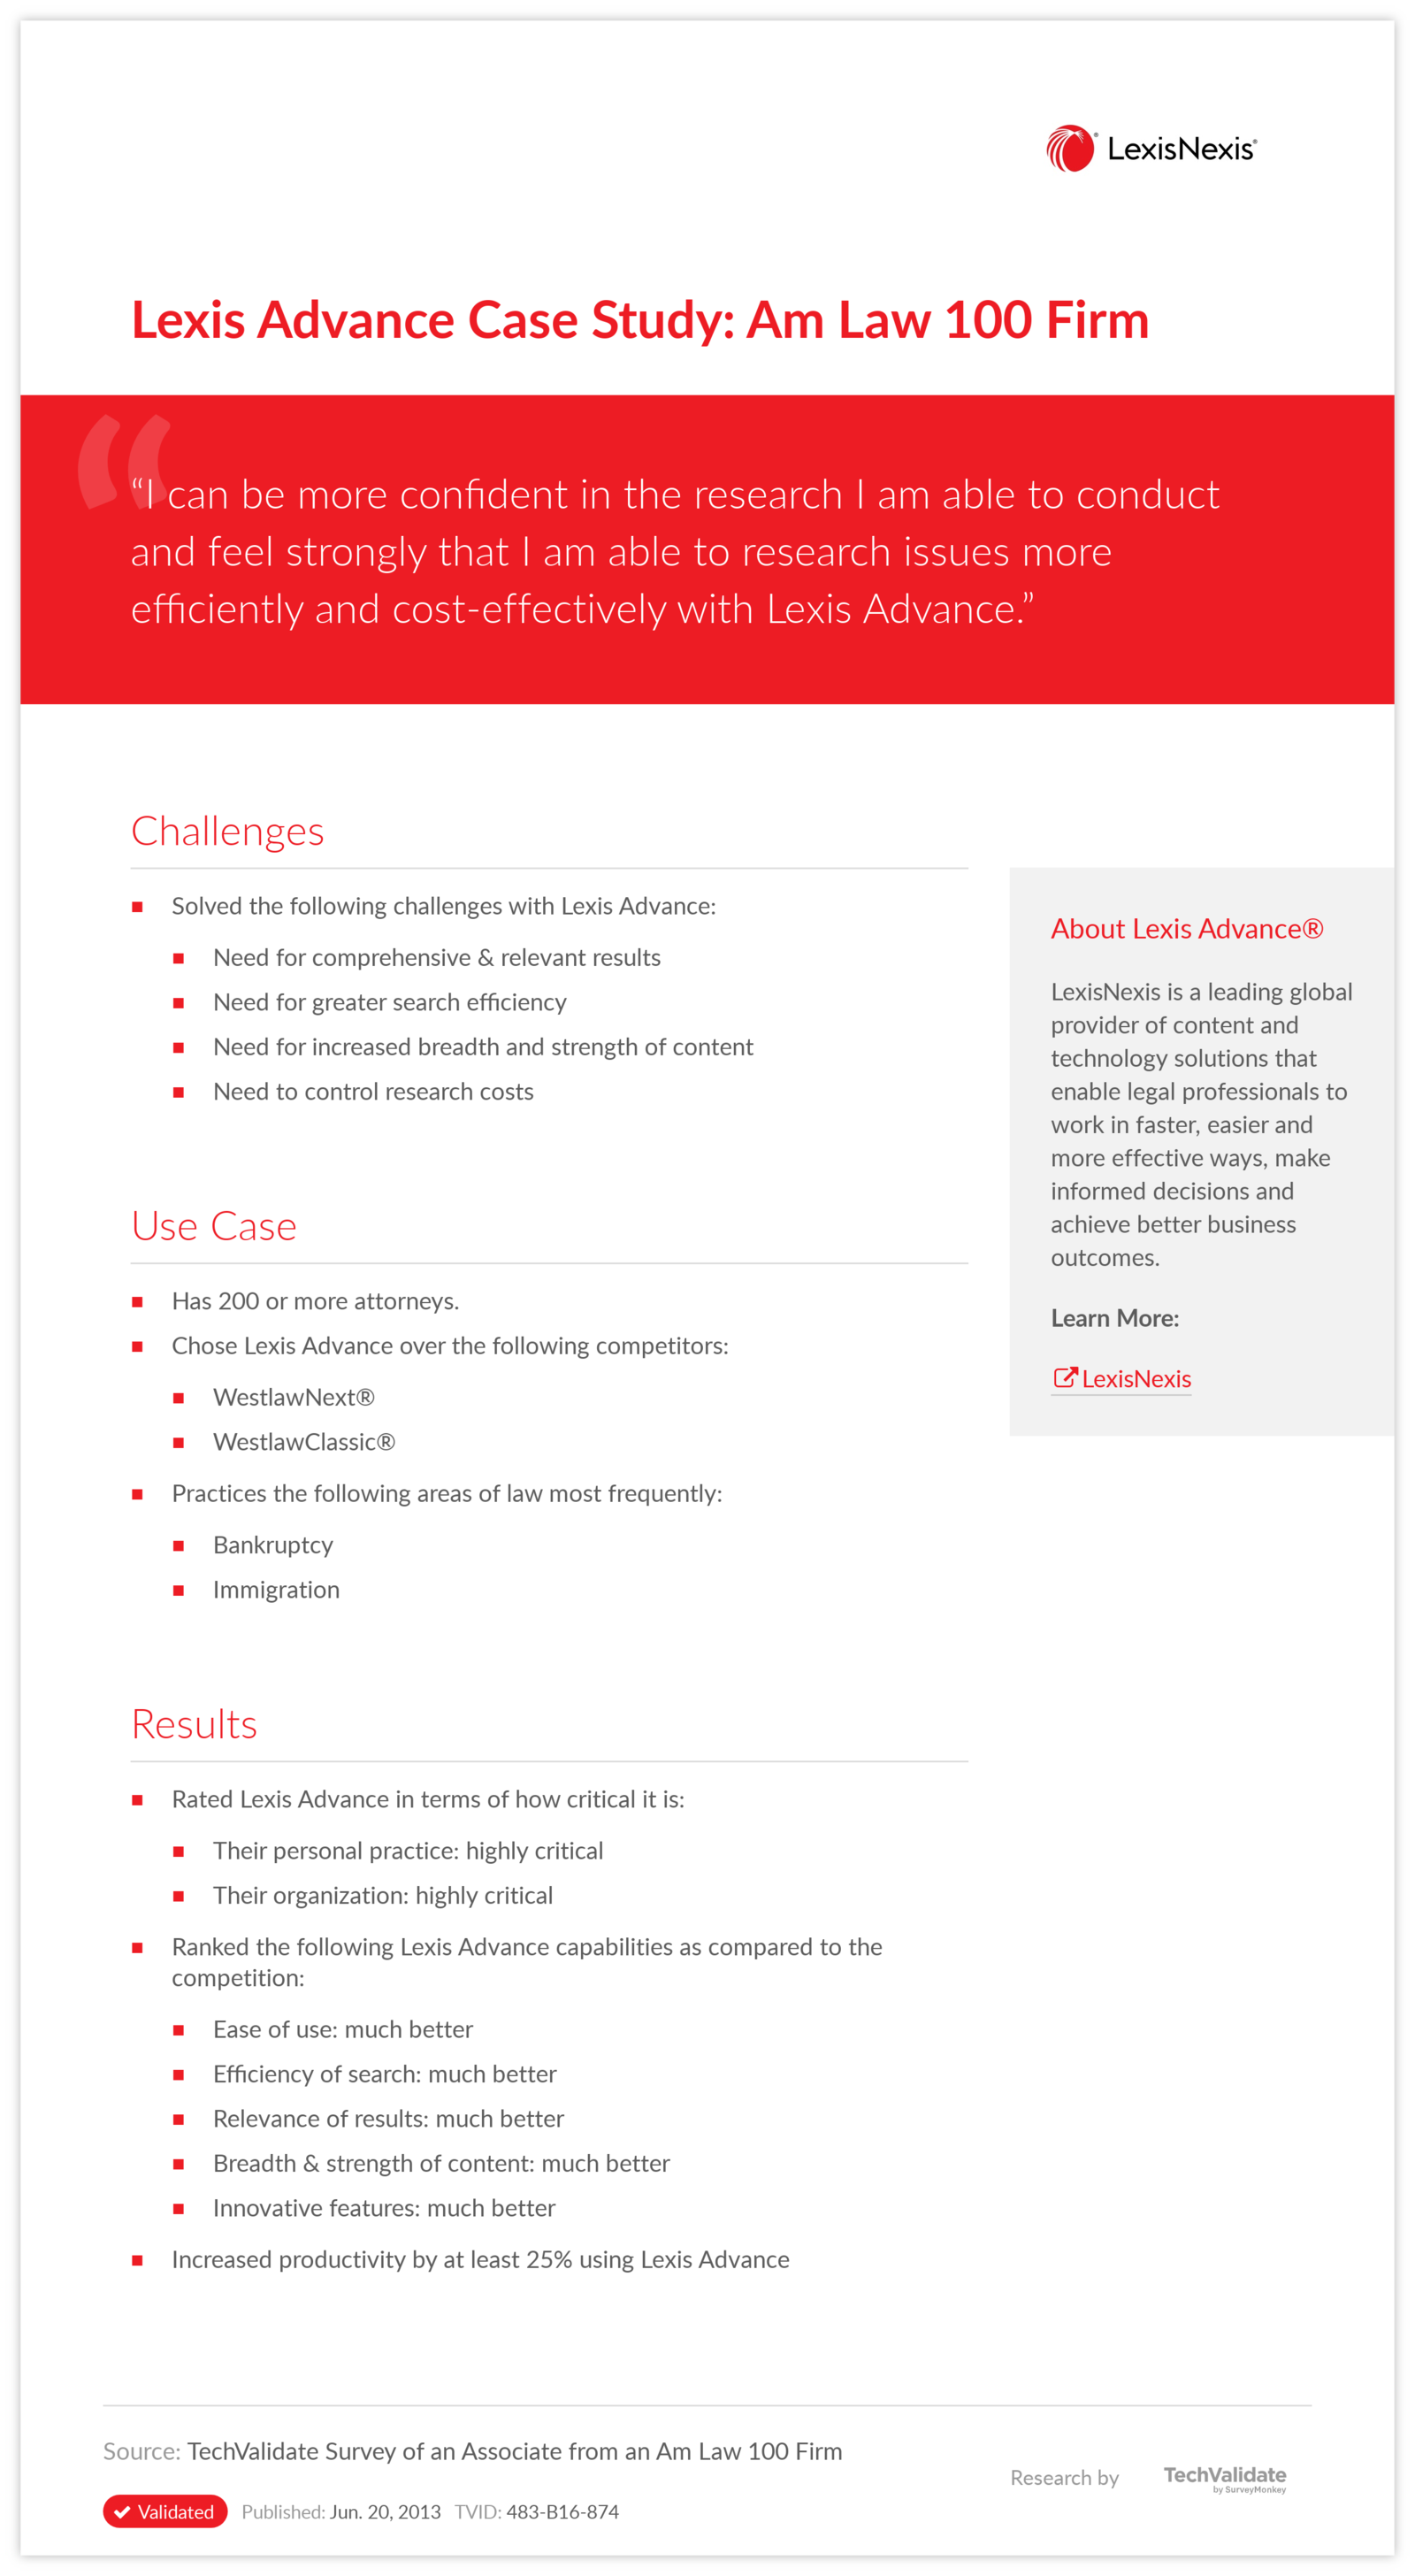 Lexis Advance Case Study: Am Law 100 Firm